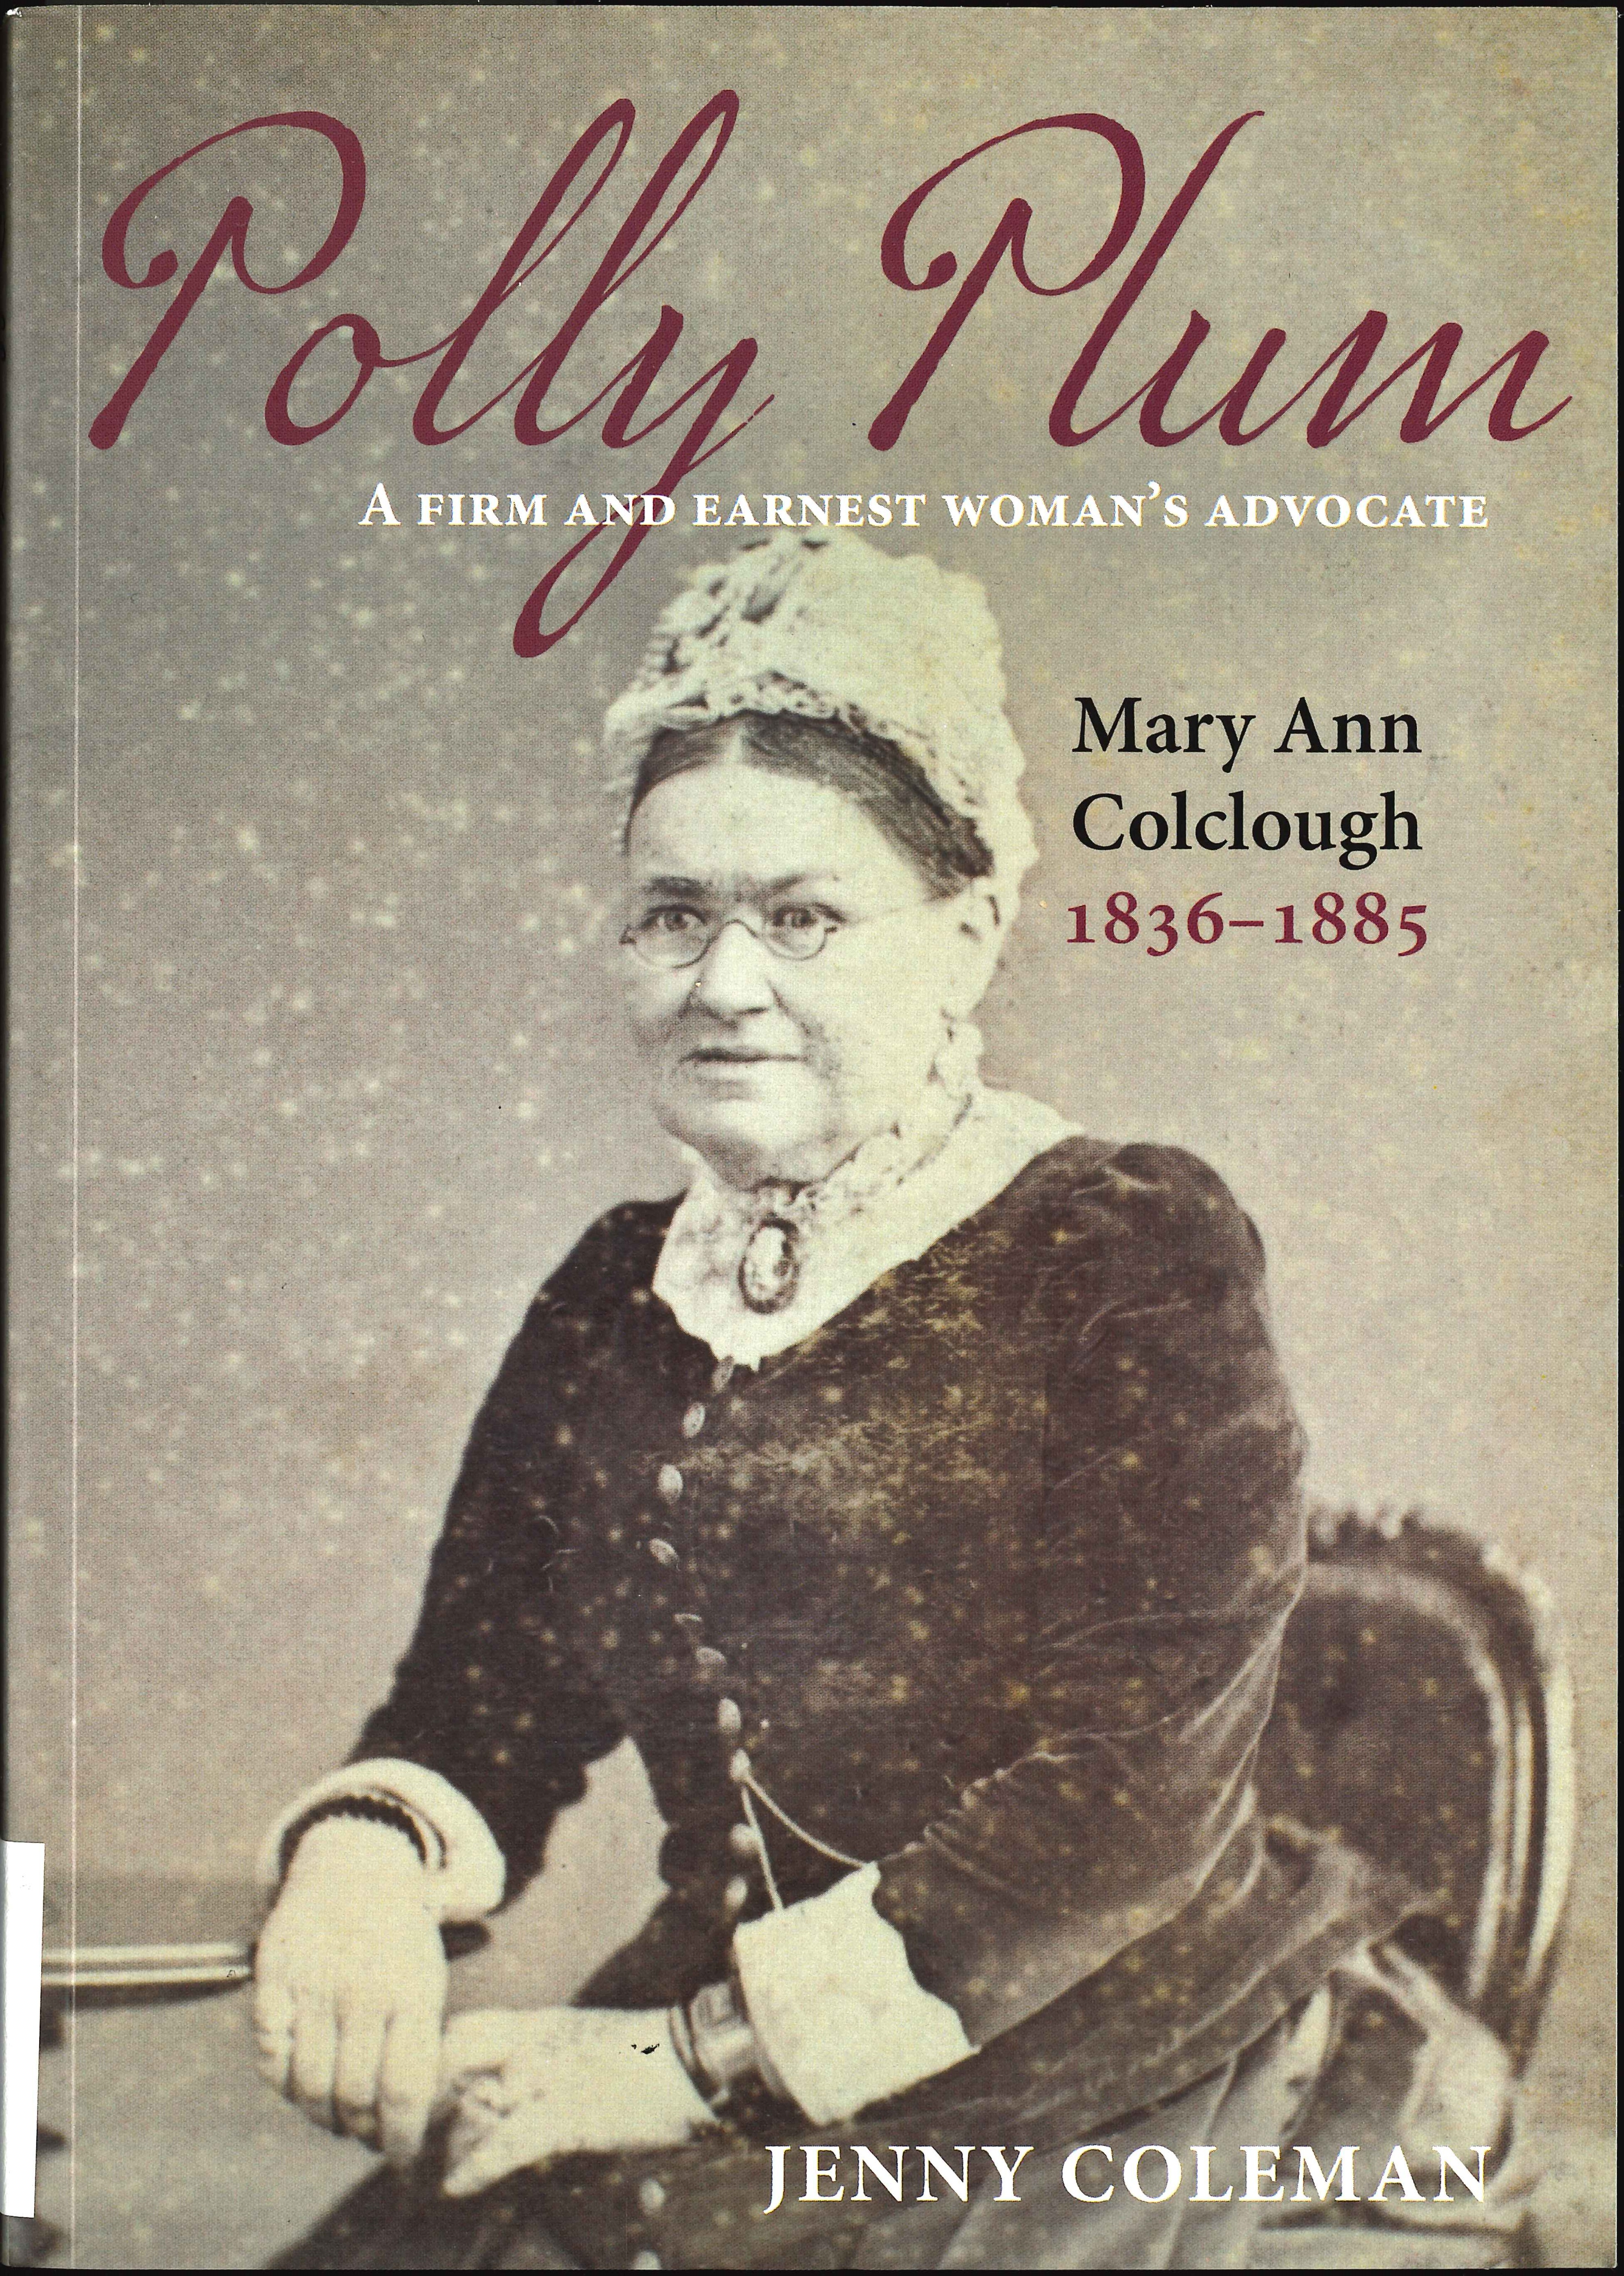 Jenny Coleman. Polly Plum: a firm and earnest woman's advocate: Mary Ann Colclough 1836-1885. Dunedin: Otago University Press, 2017.